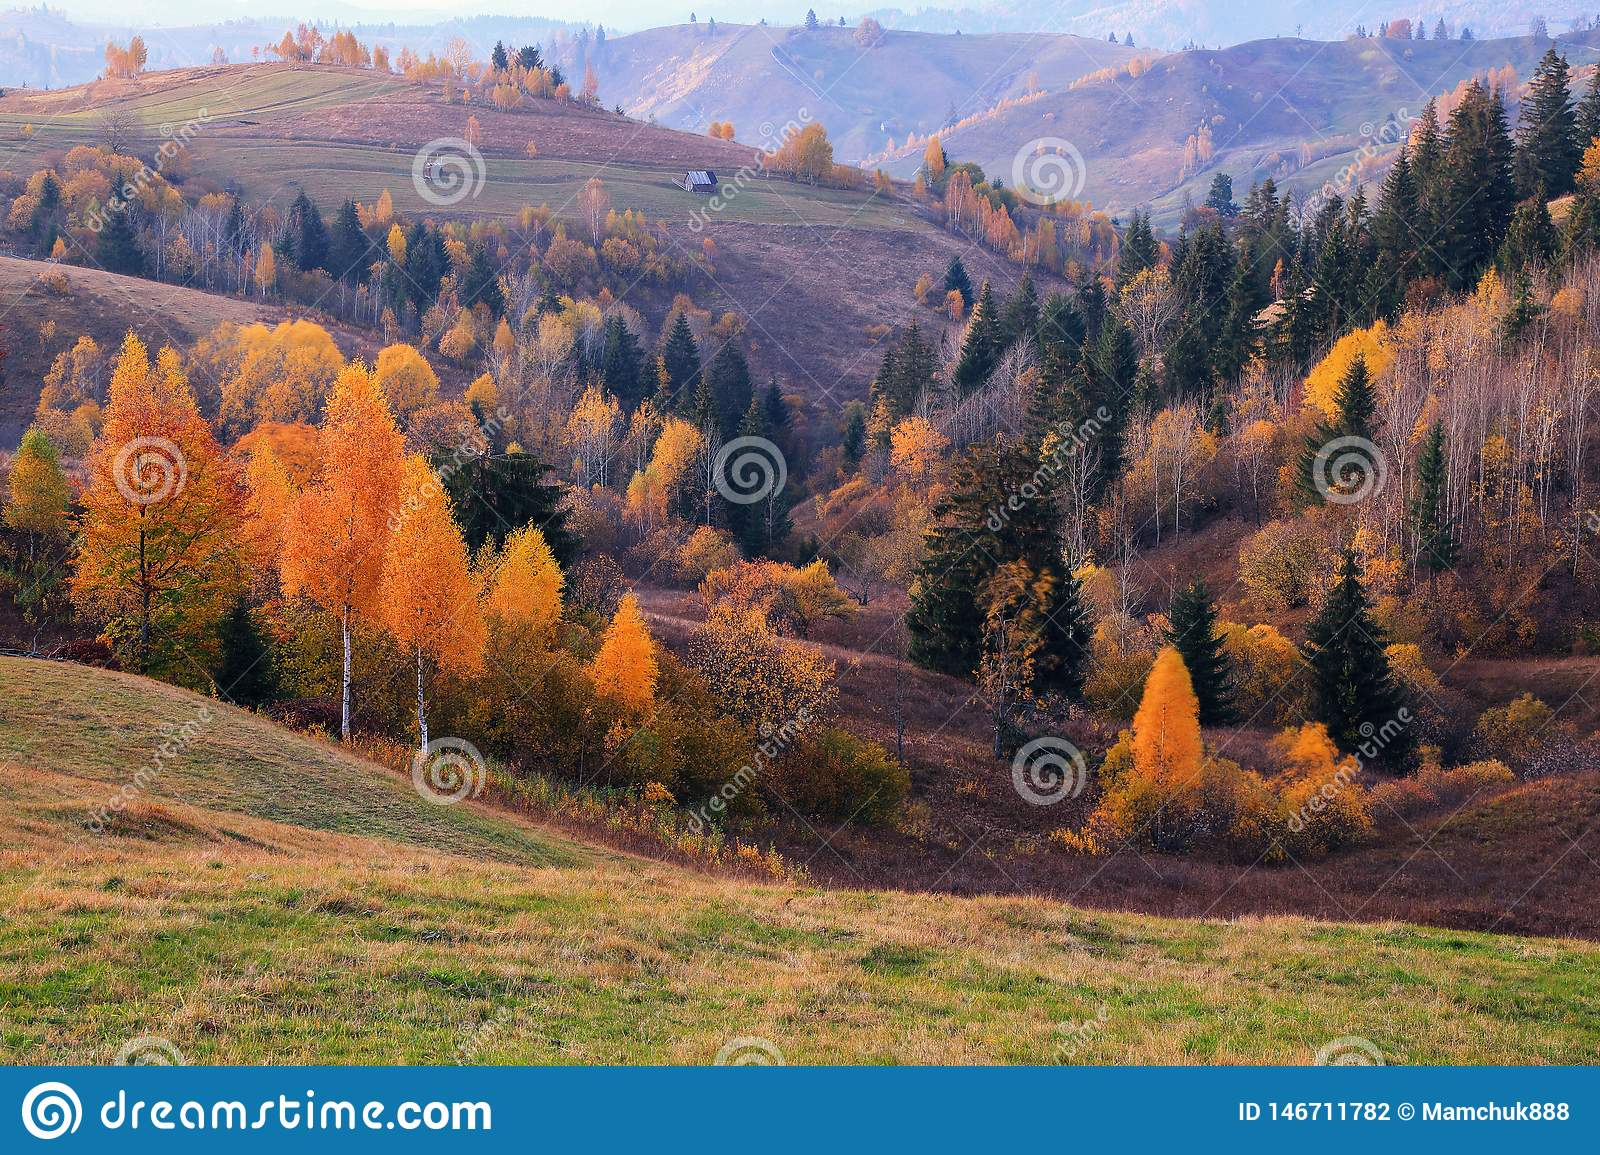 Autumn scene in the sunny day. In the beautiful forest of the trees with the orange, yellow coloured leaves there is an old house.